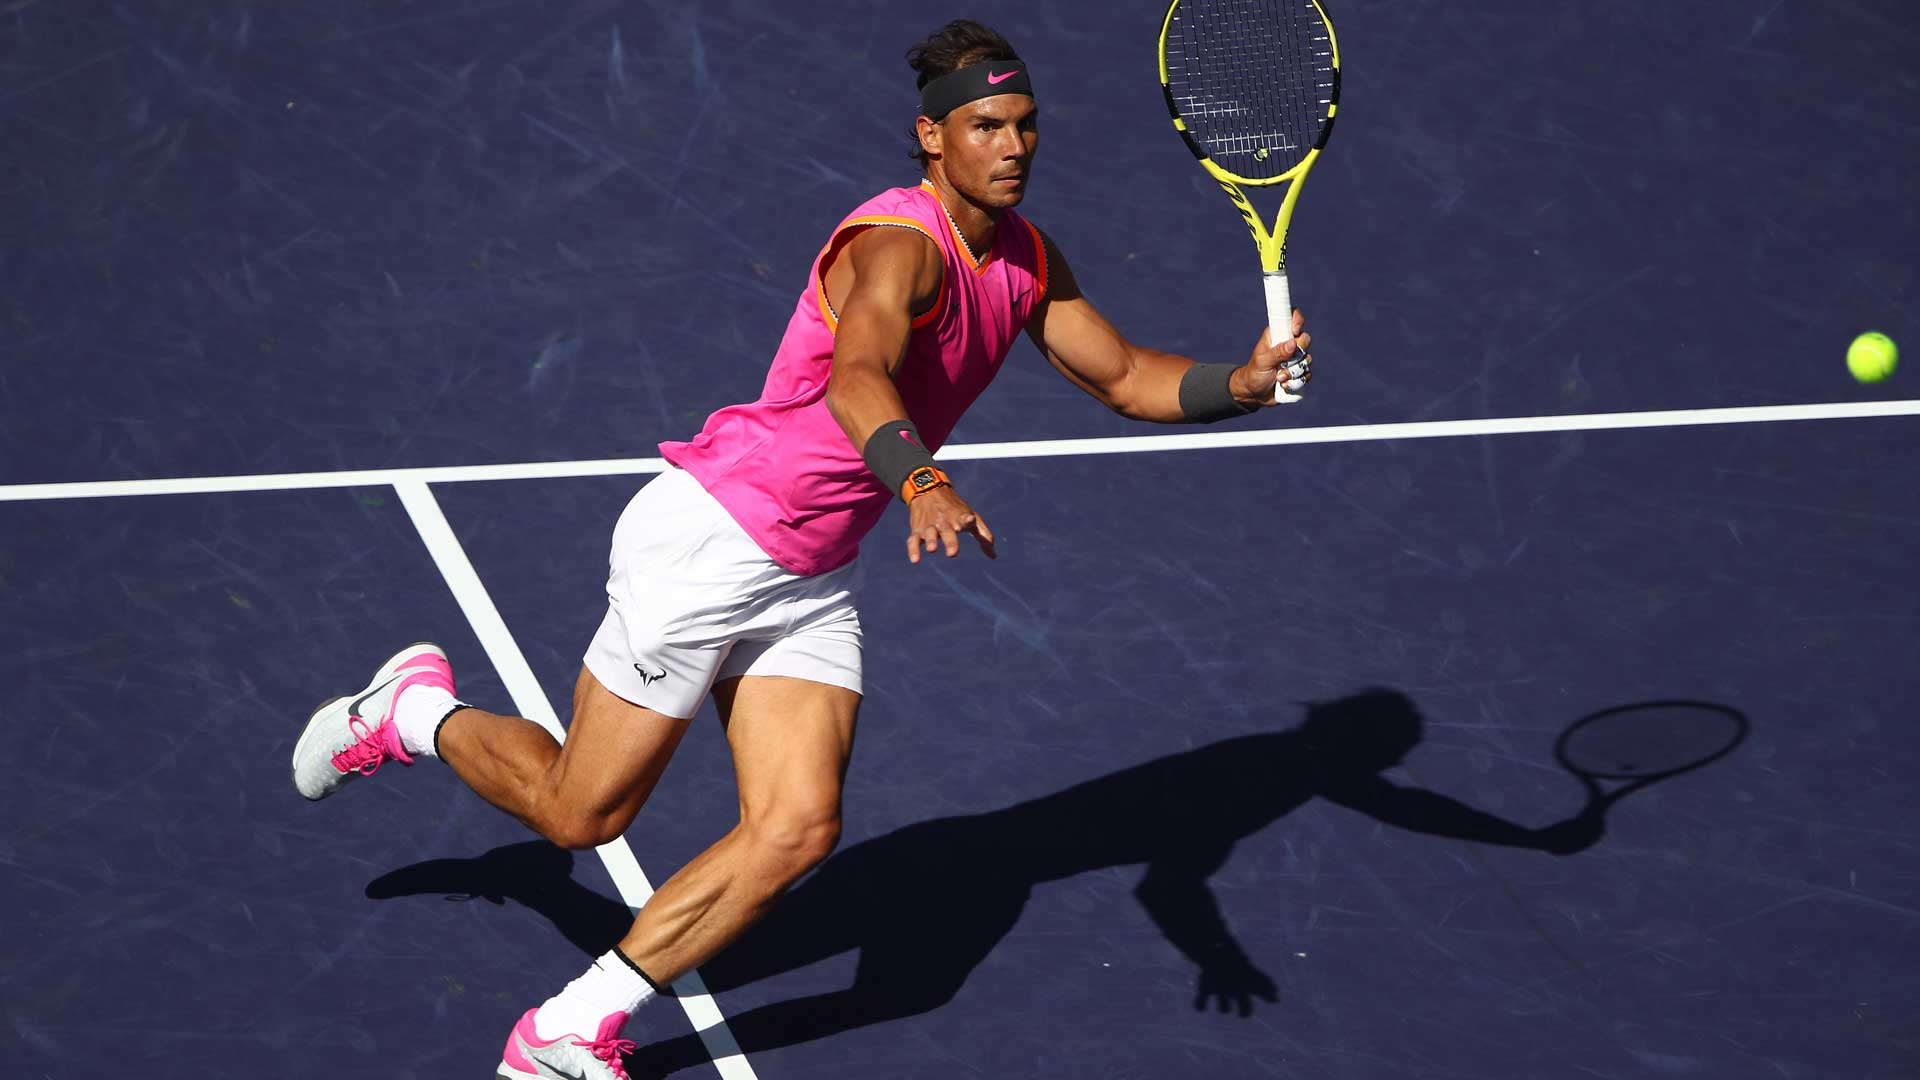 <a href='https://www.atptour.com/en/players/rafael-nadal/n409/overview'>Rafael Nadal</a> hits a volley in his Indian Wells quarter-final against <a href='https://www.atptour.com/en/players/karen-khachanov/ke29/overview'>Karen Khachanov</a>.